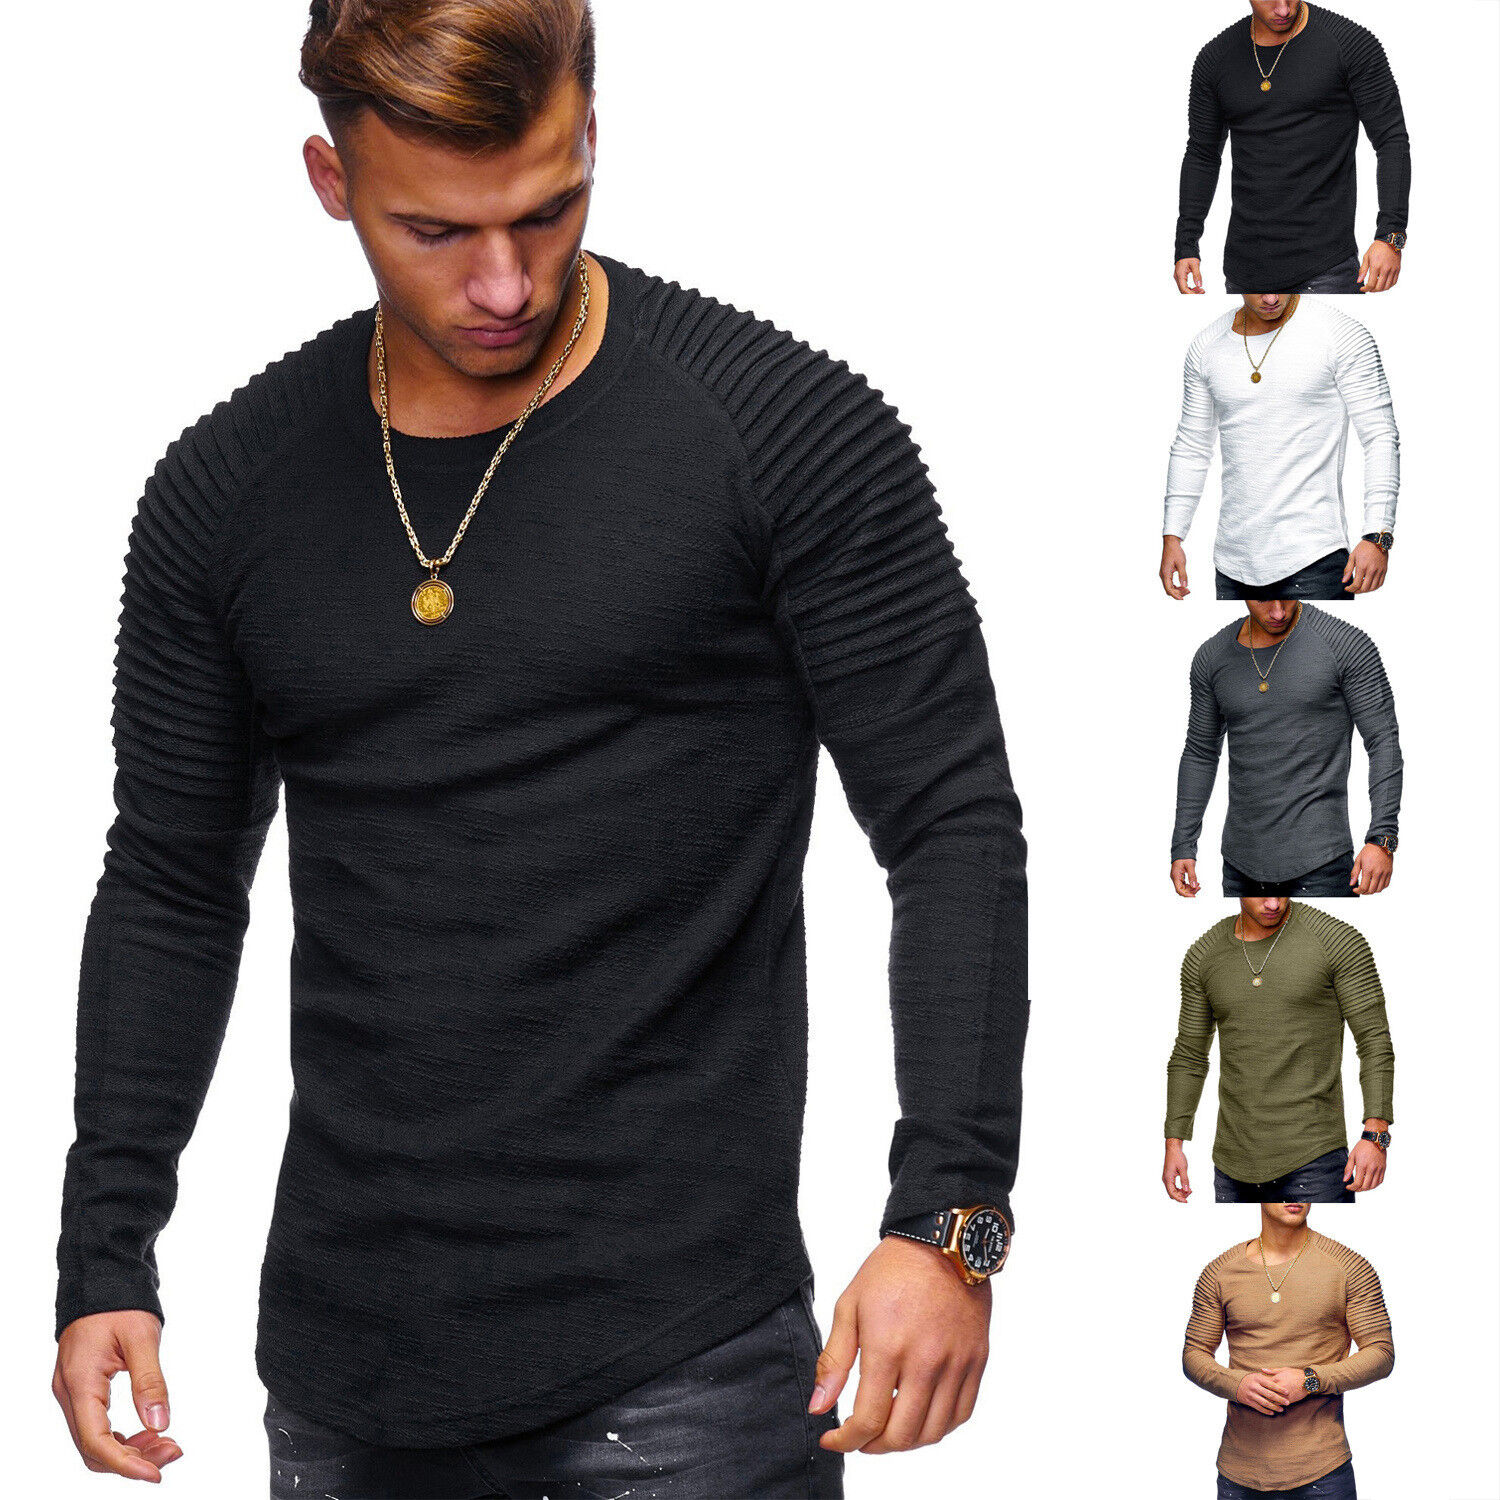 Thermal Men/'s Slim Fit O Neck Long Sleeve Muscle Tee T-shirt Top Blouse Casual